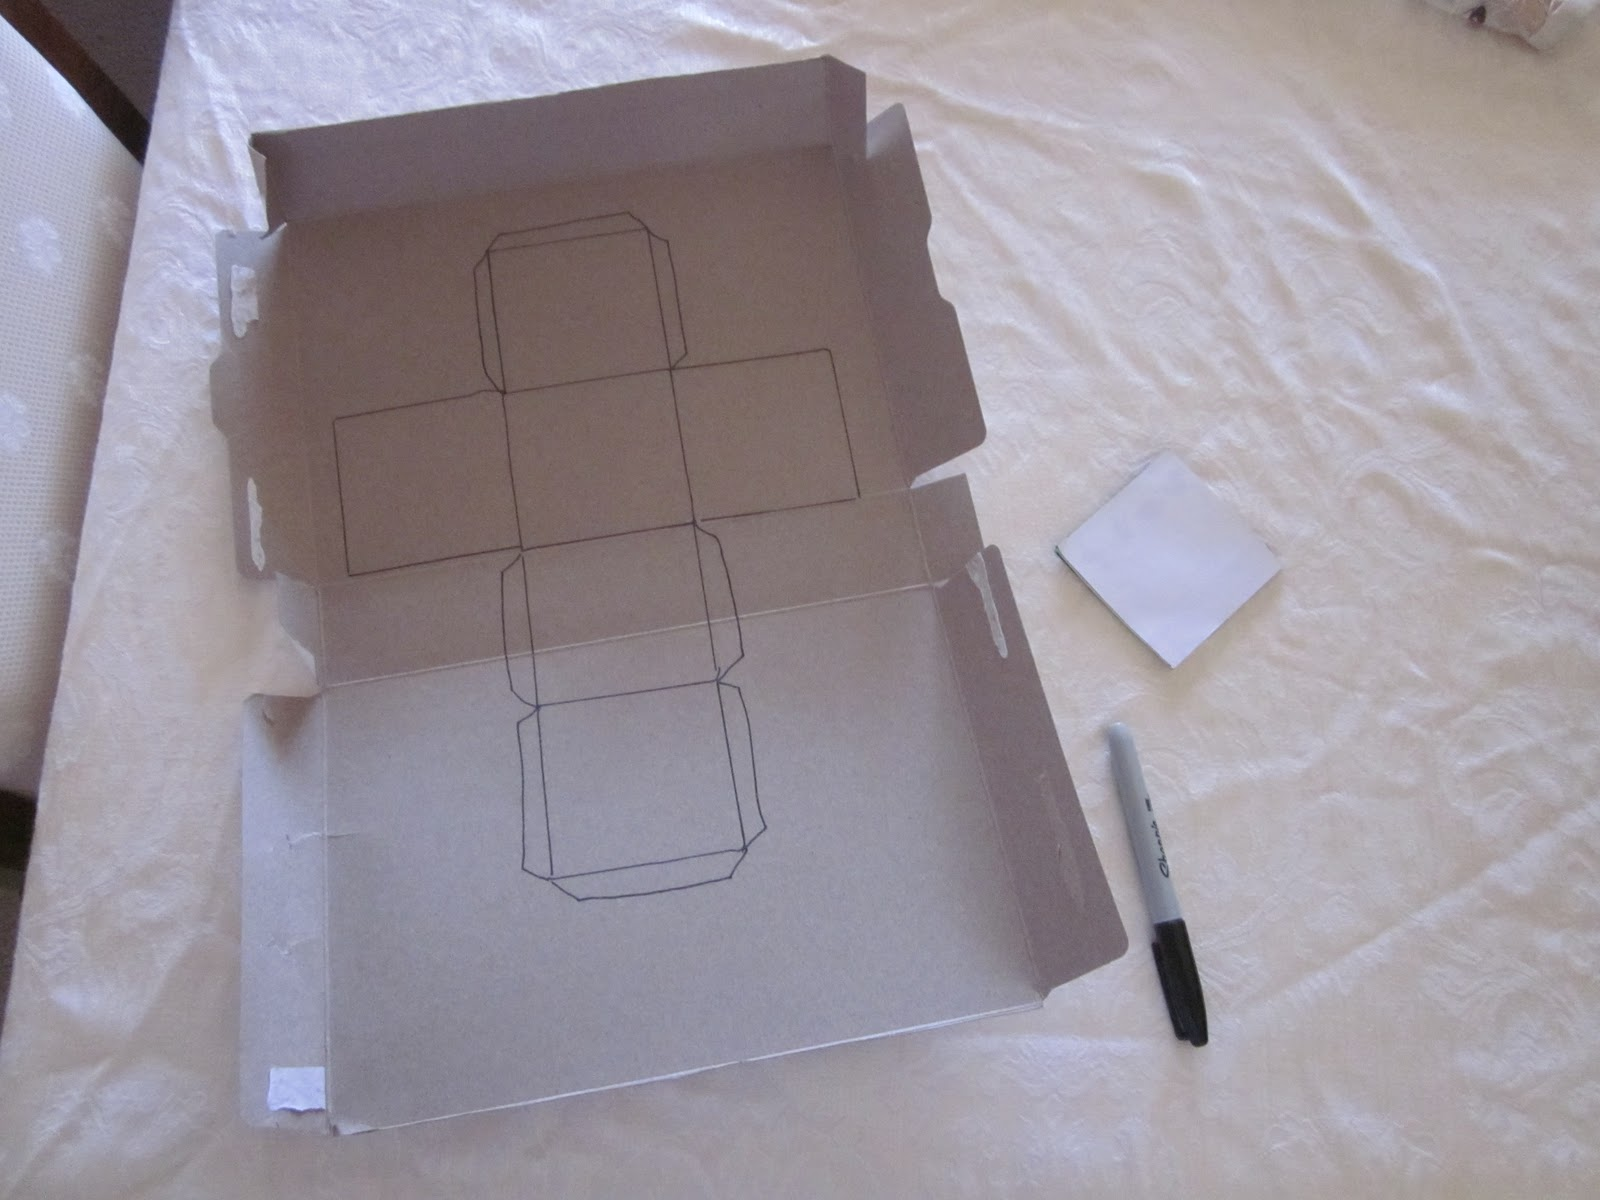 How to Make Your Own Baby Blocks with Cardboard